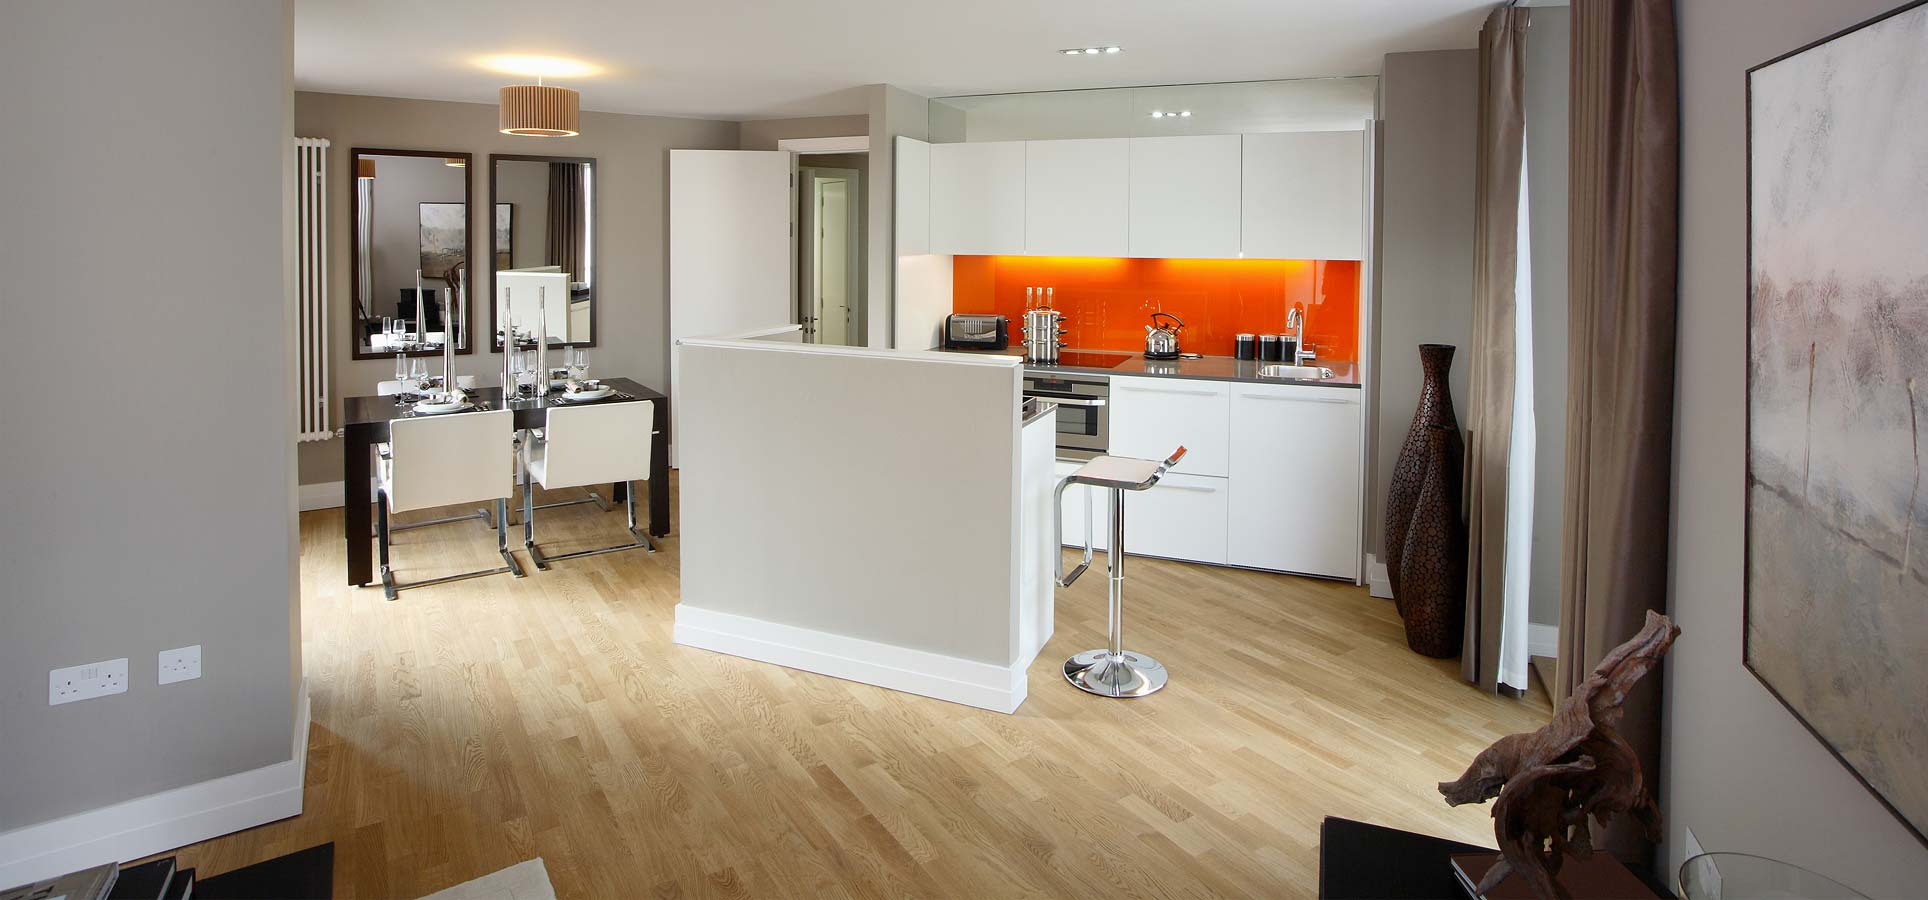 Residential Fit Out, Highcross, Jessops Construction Ltd